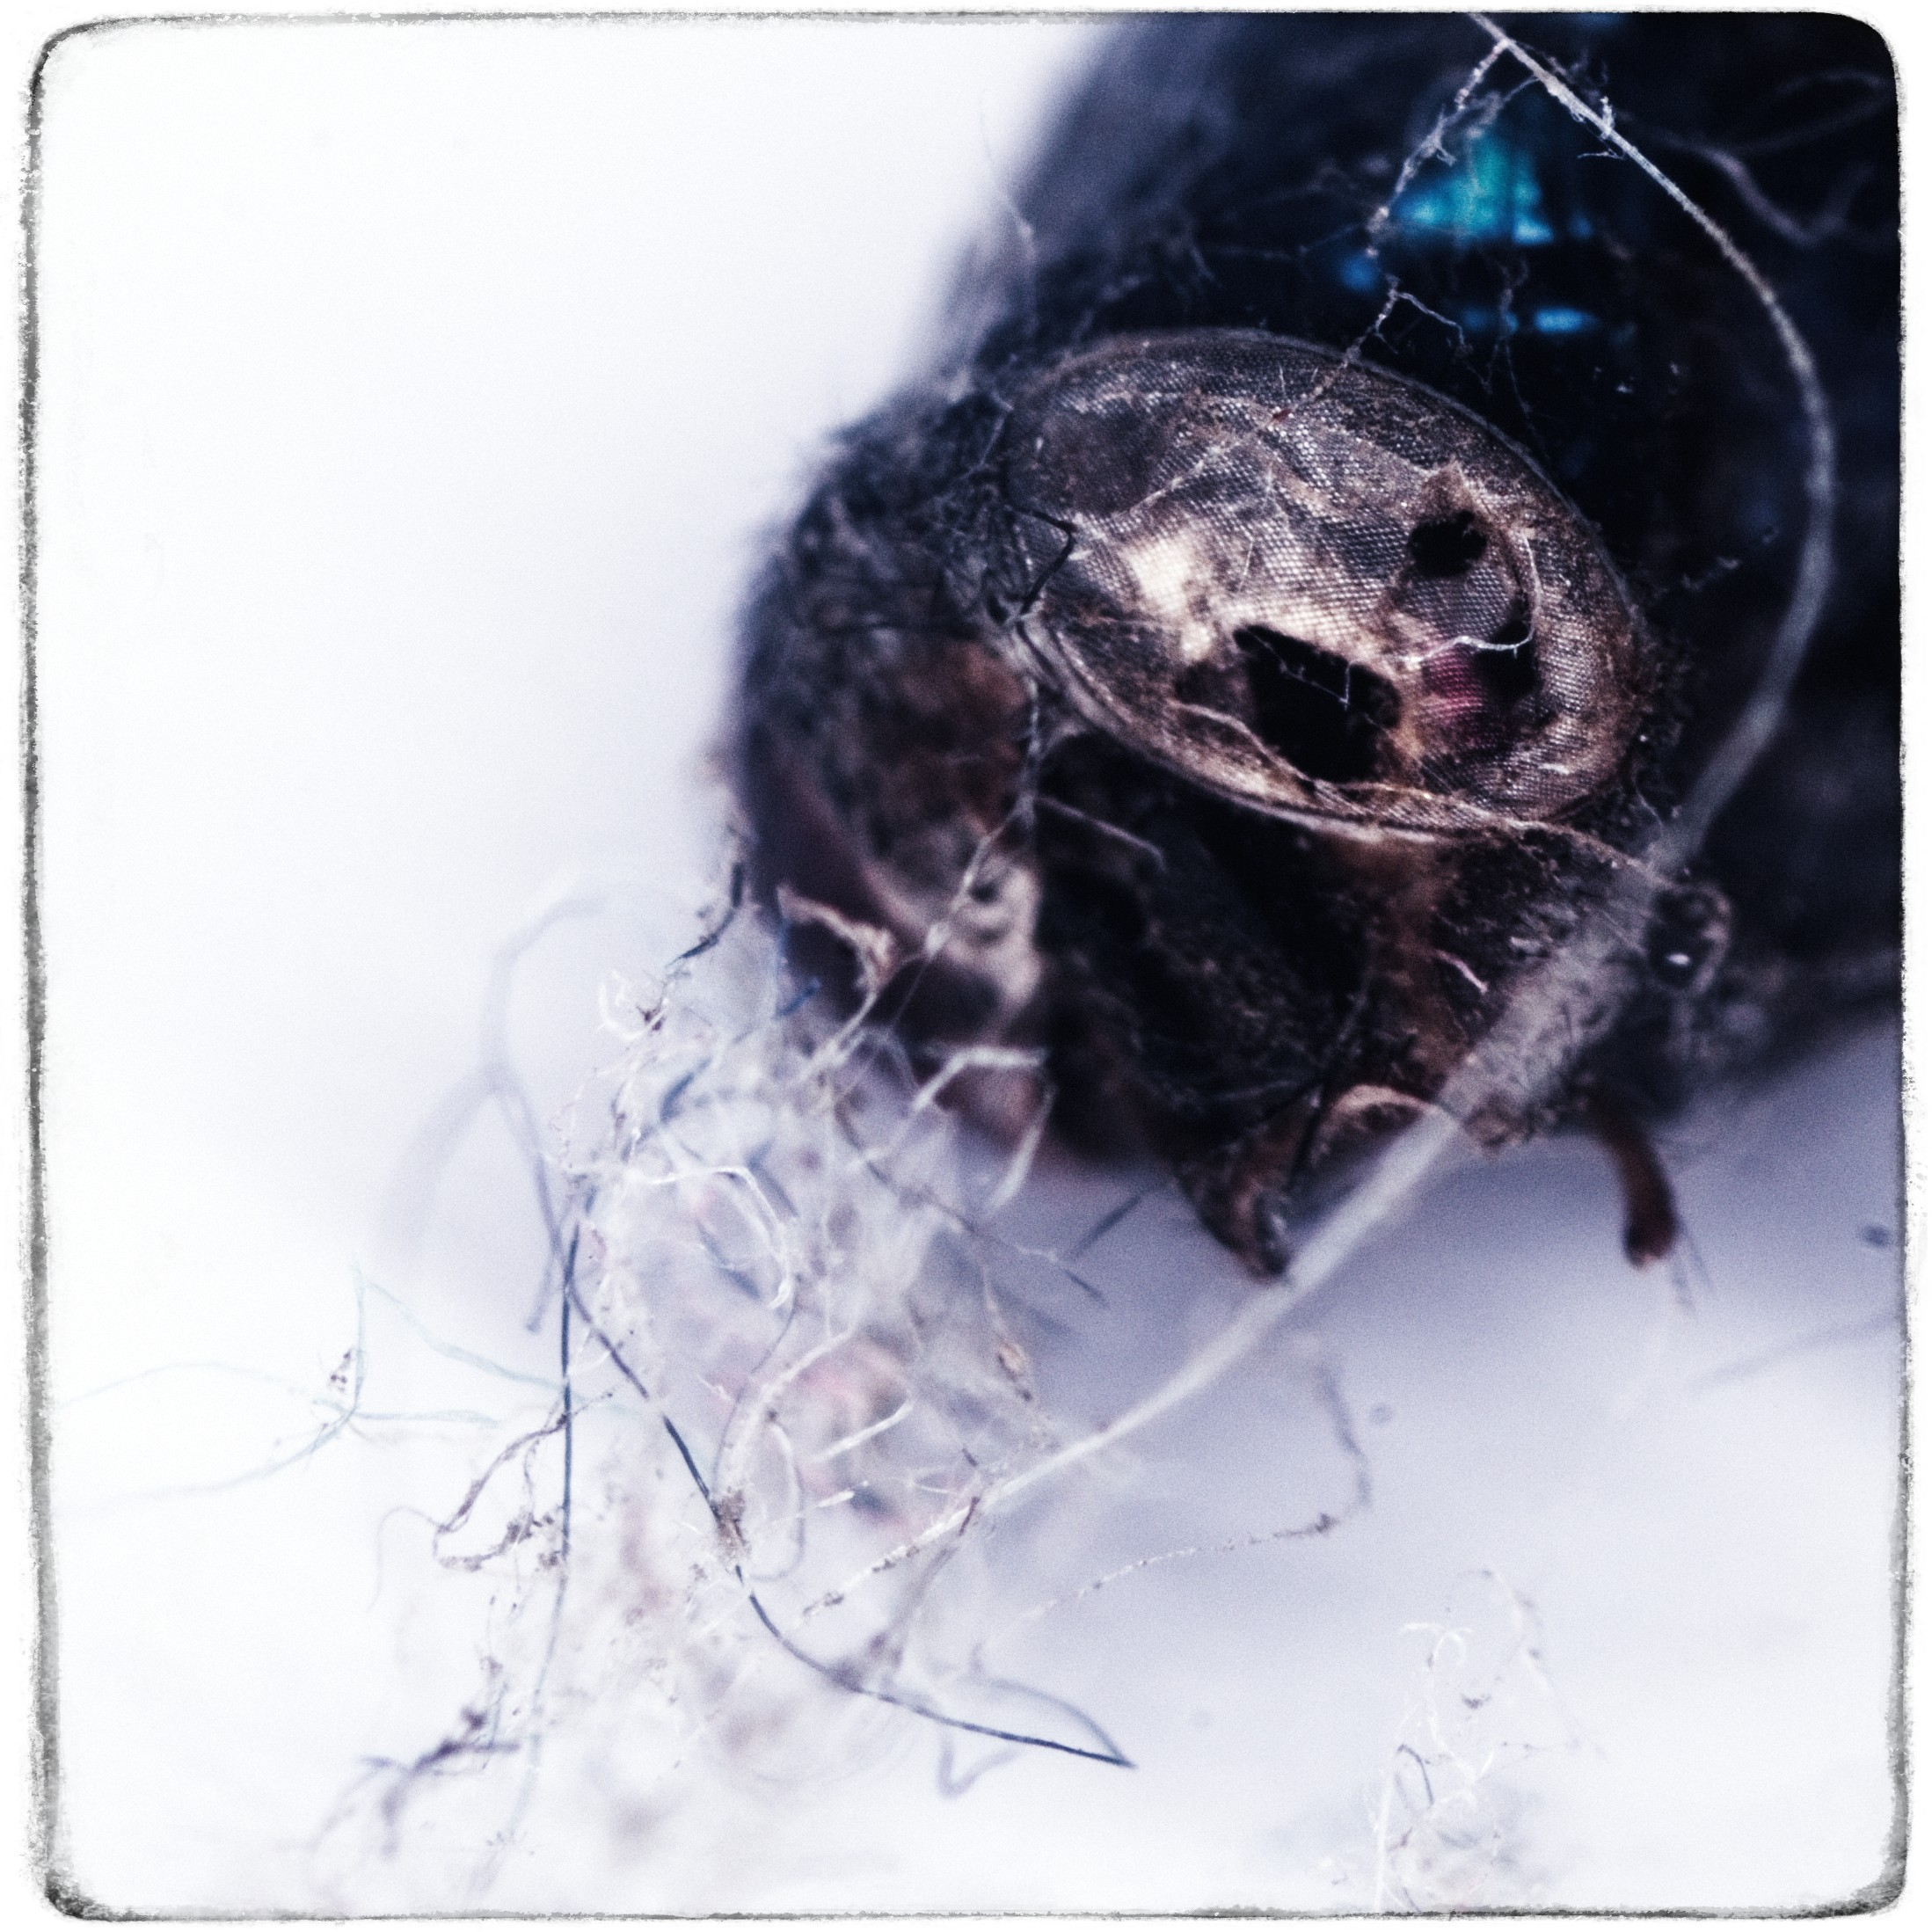 A macro photo of the remains of a fly.